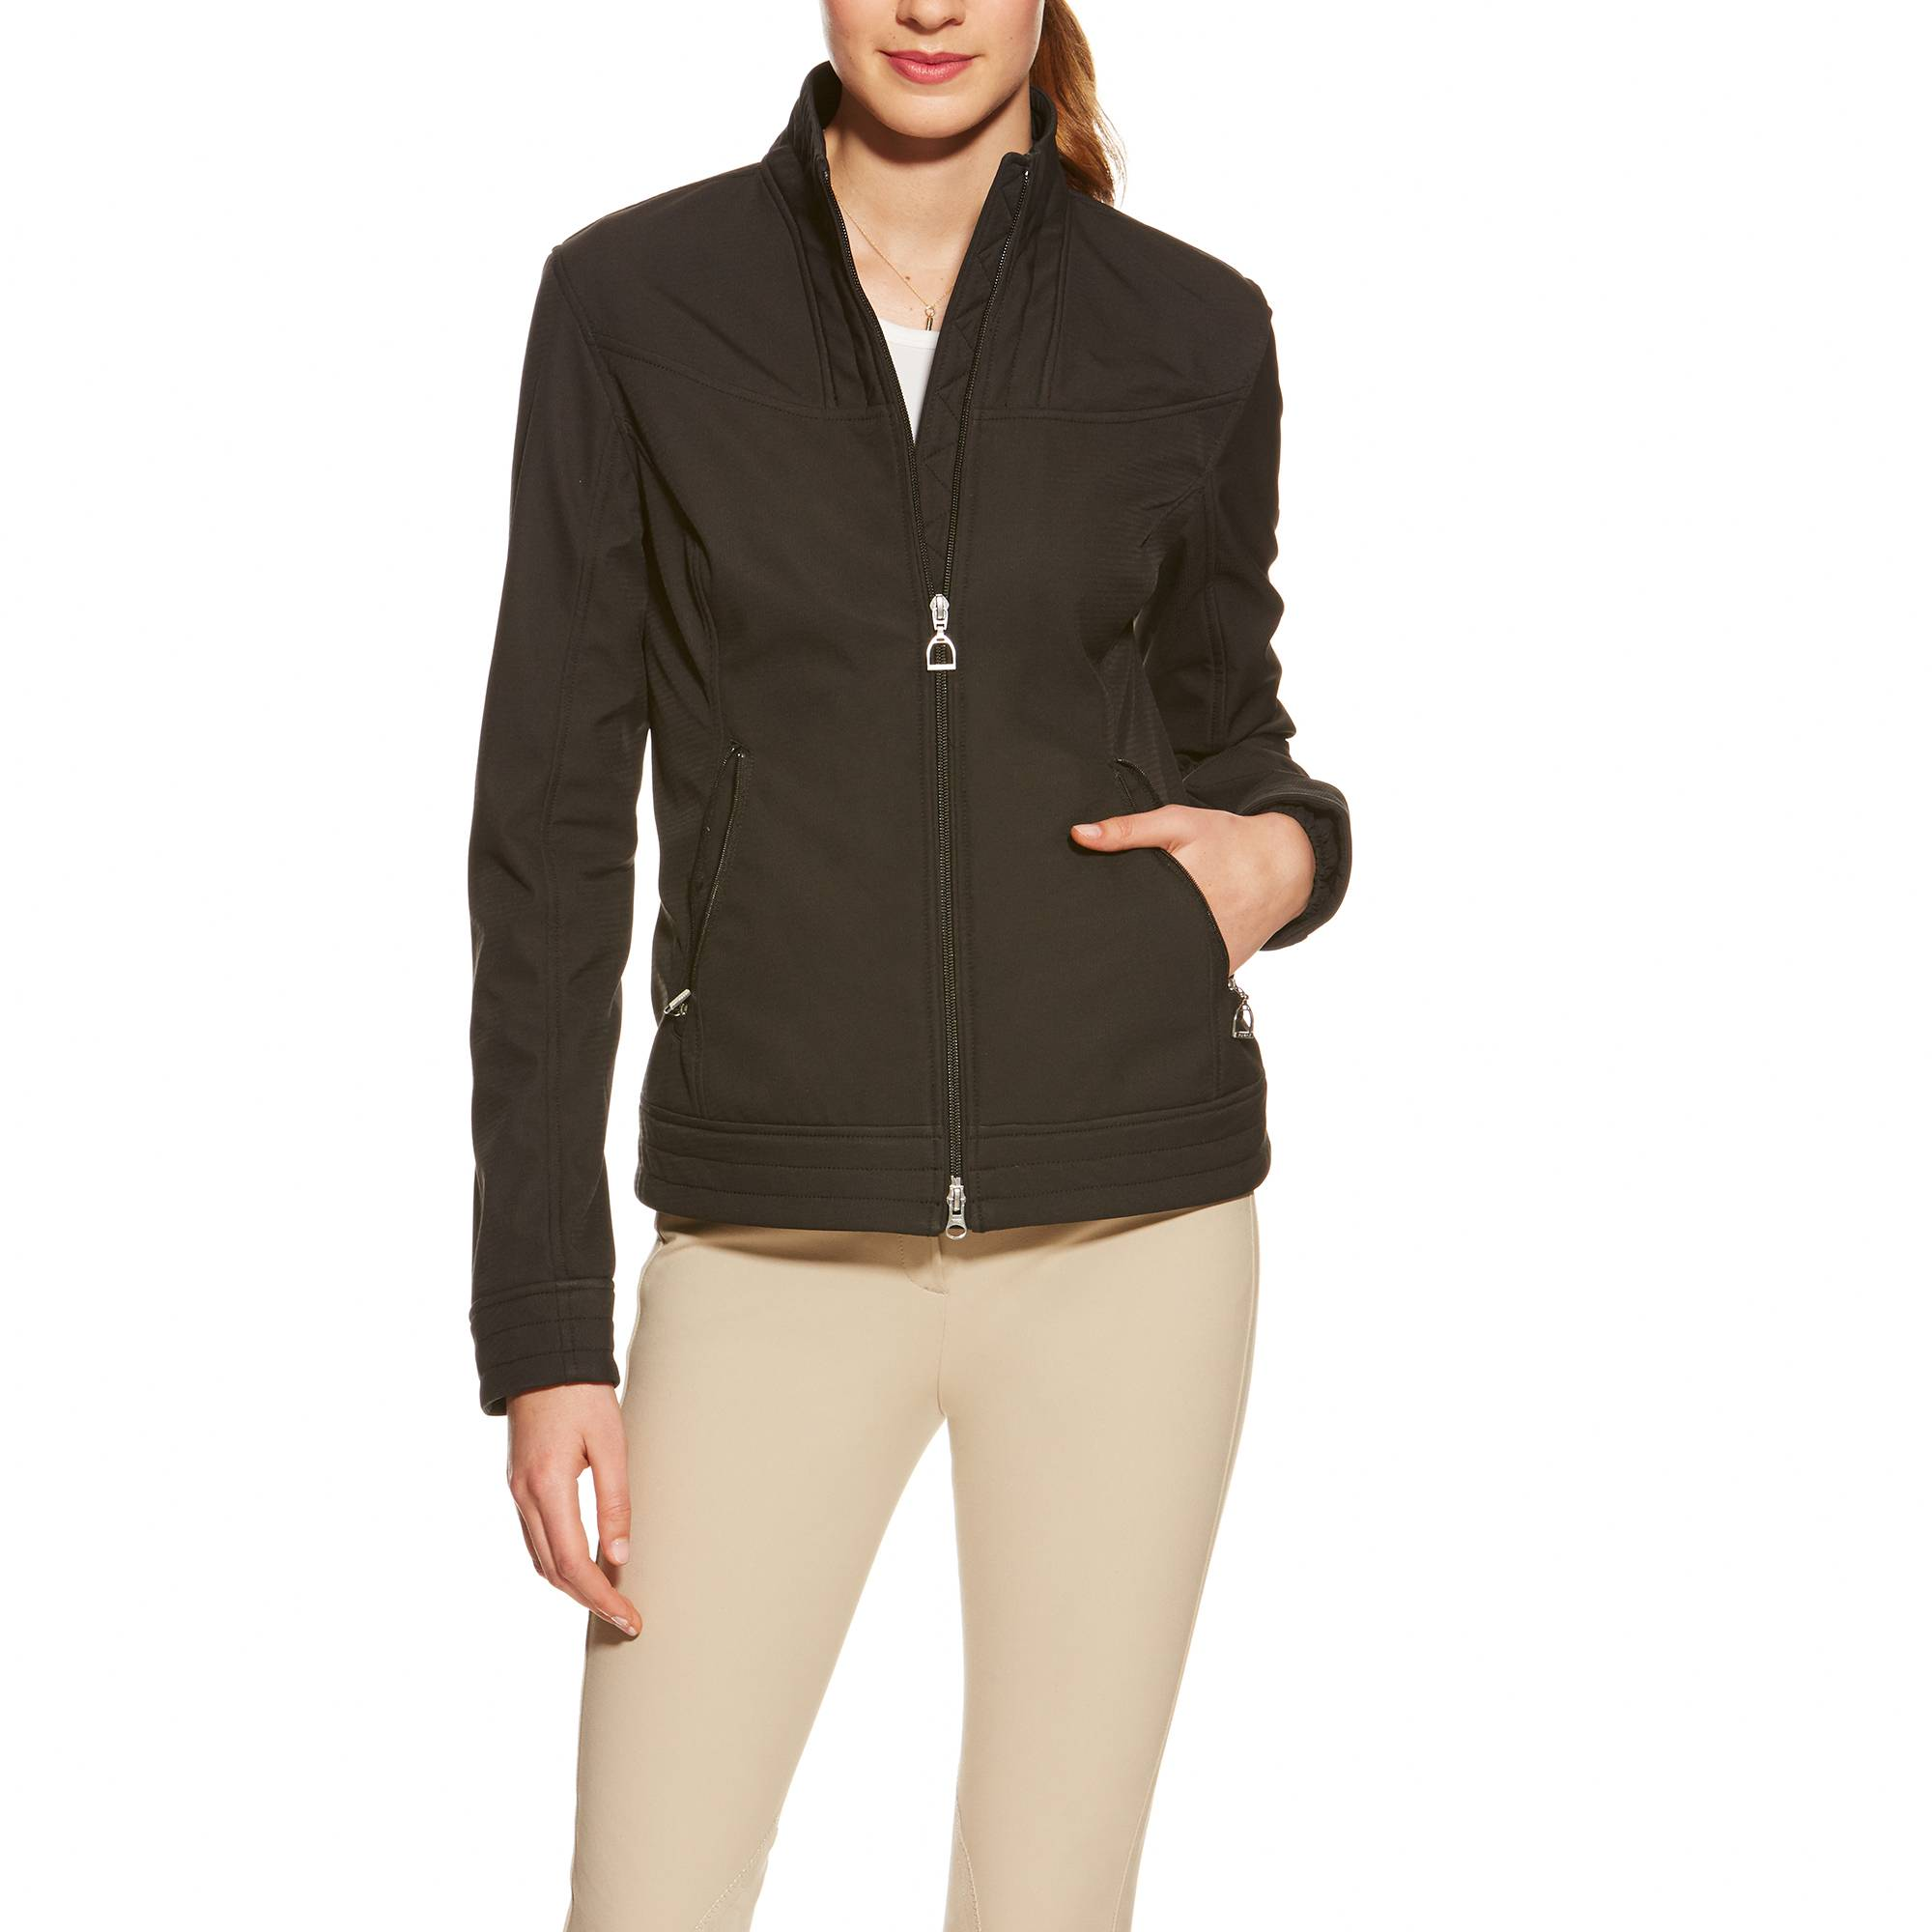 Ariat Revel Softshell Jacket - Ladies - Black